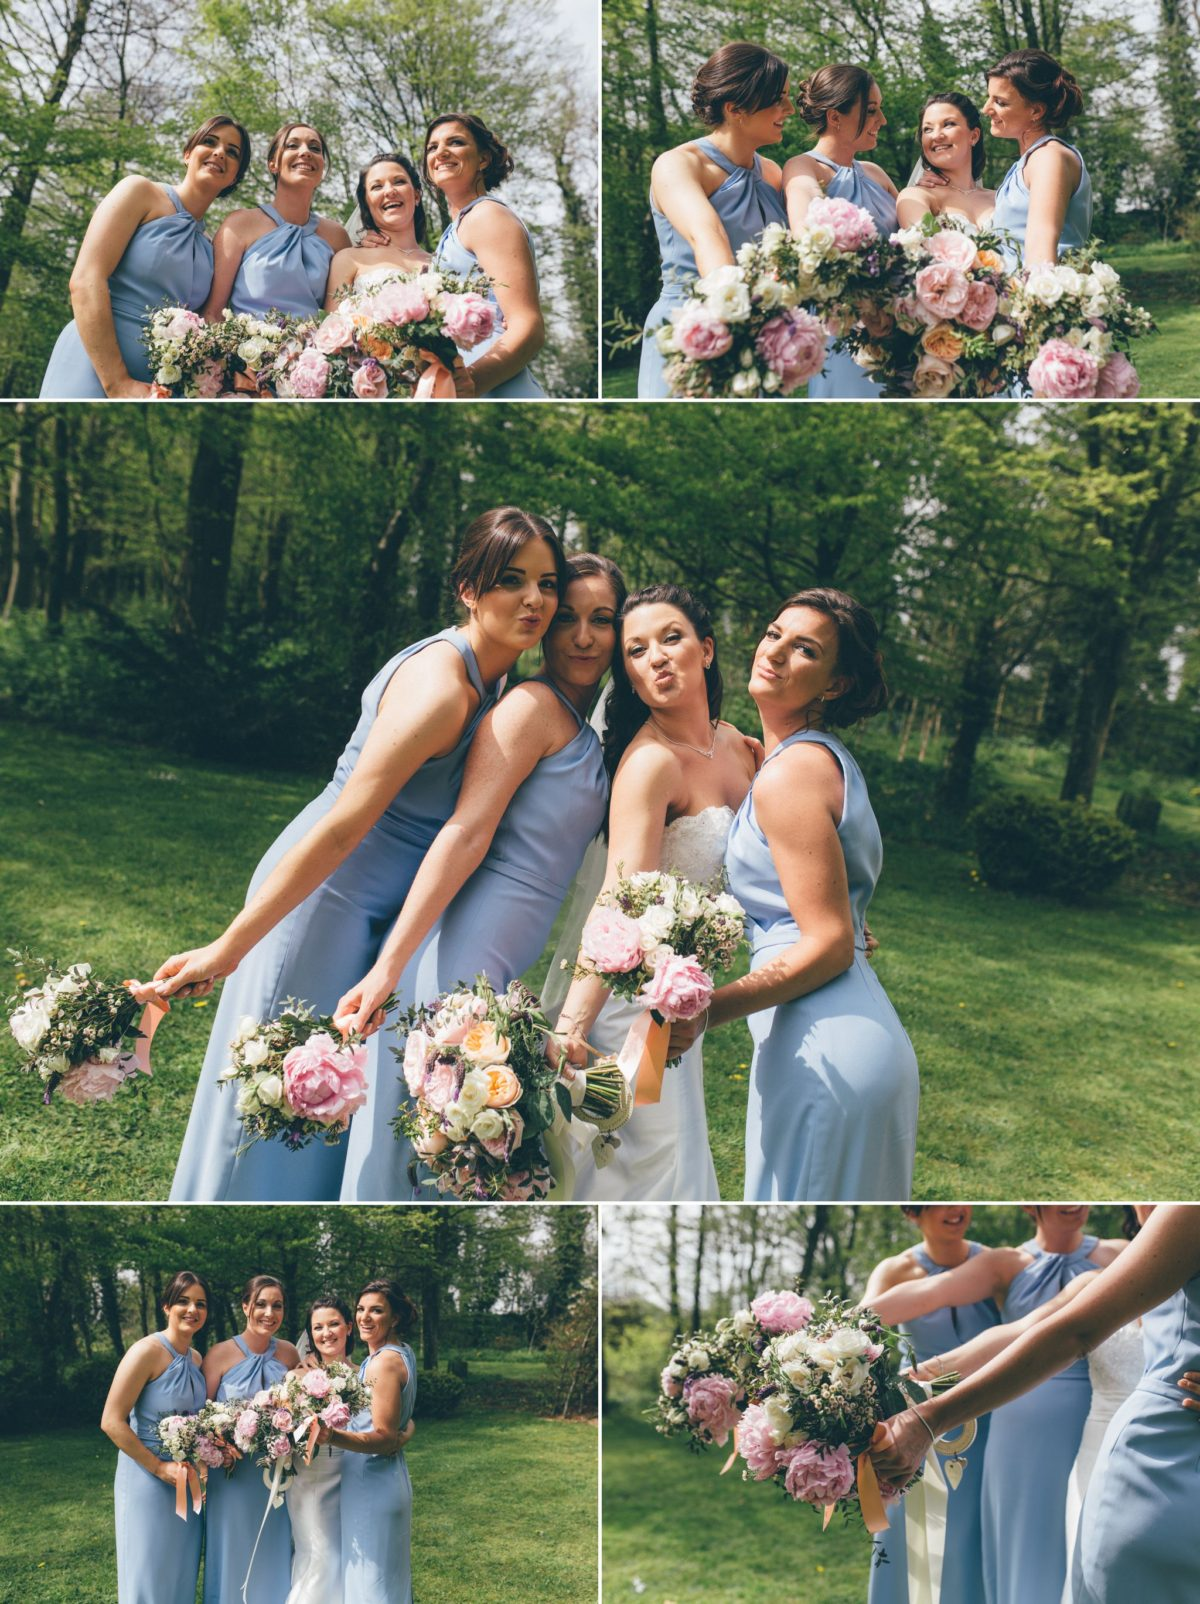 cripps_barn_gloucesterhsire_welsh_wedding_photographer_rachel_lambert_photography_jordan_amy_ 82